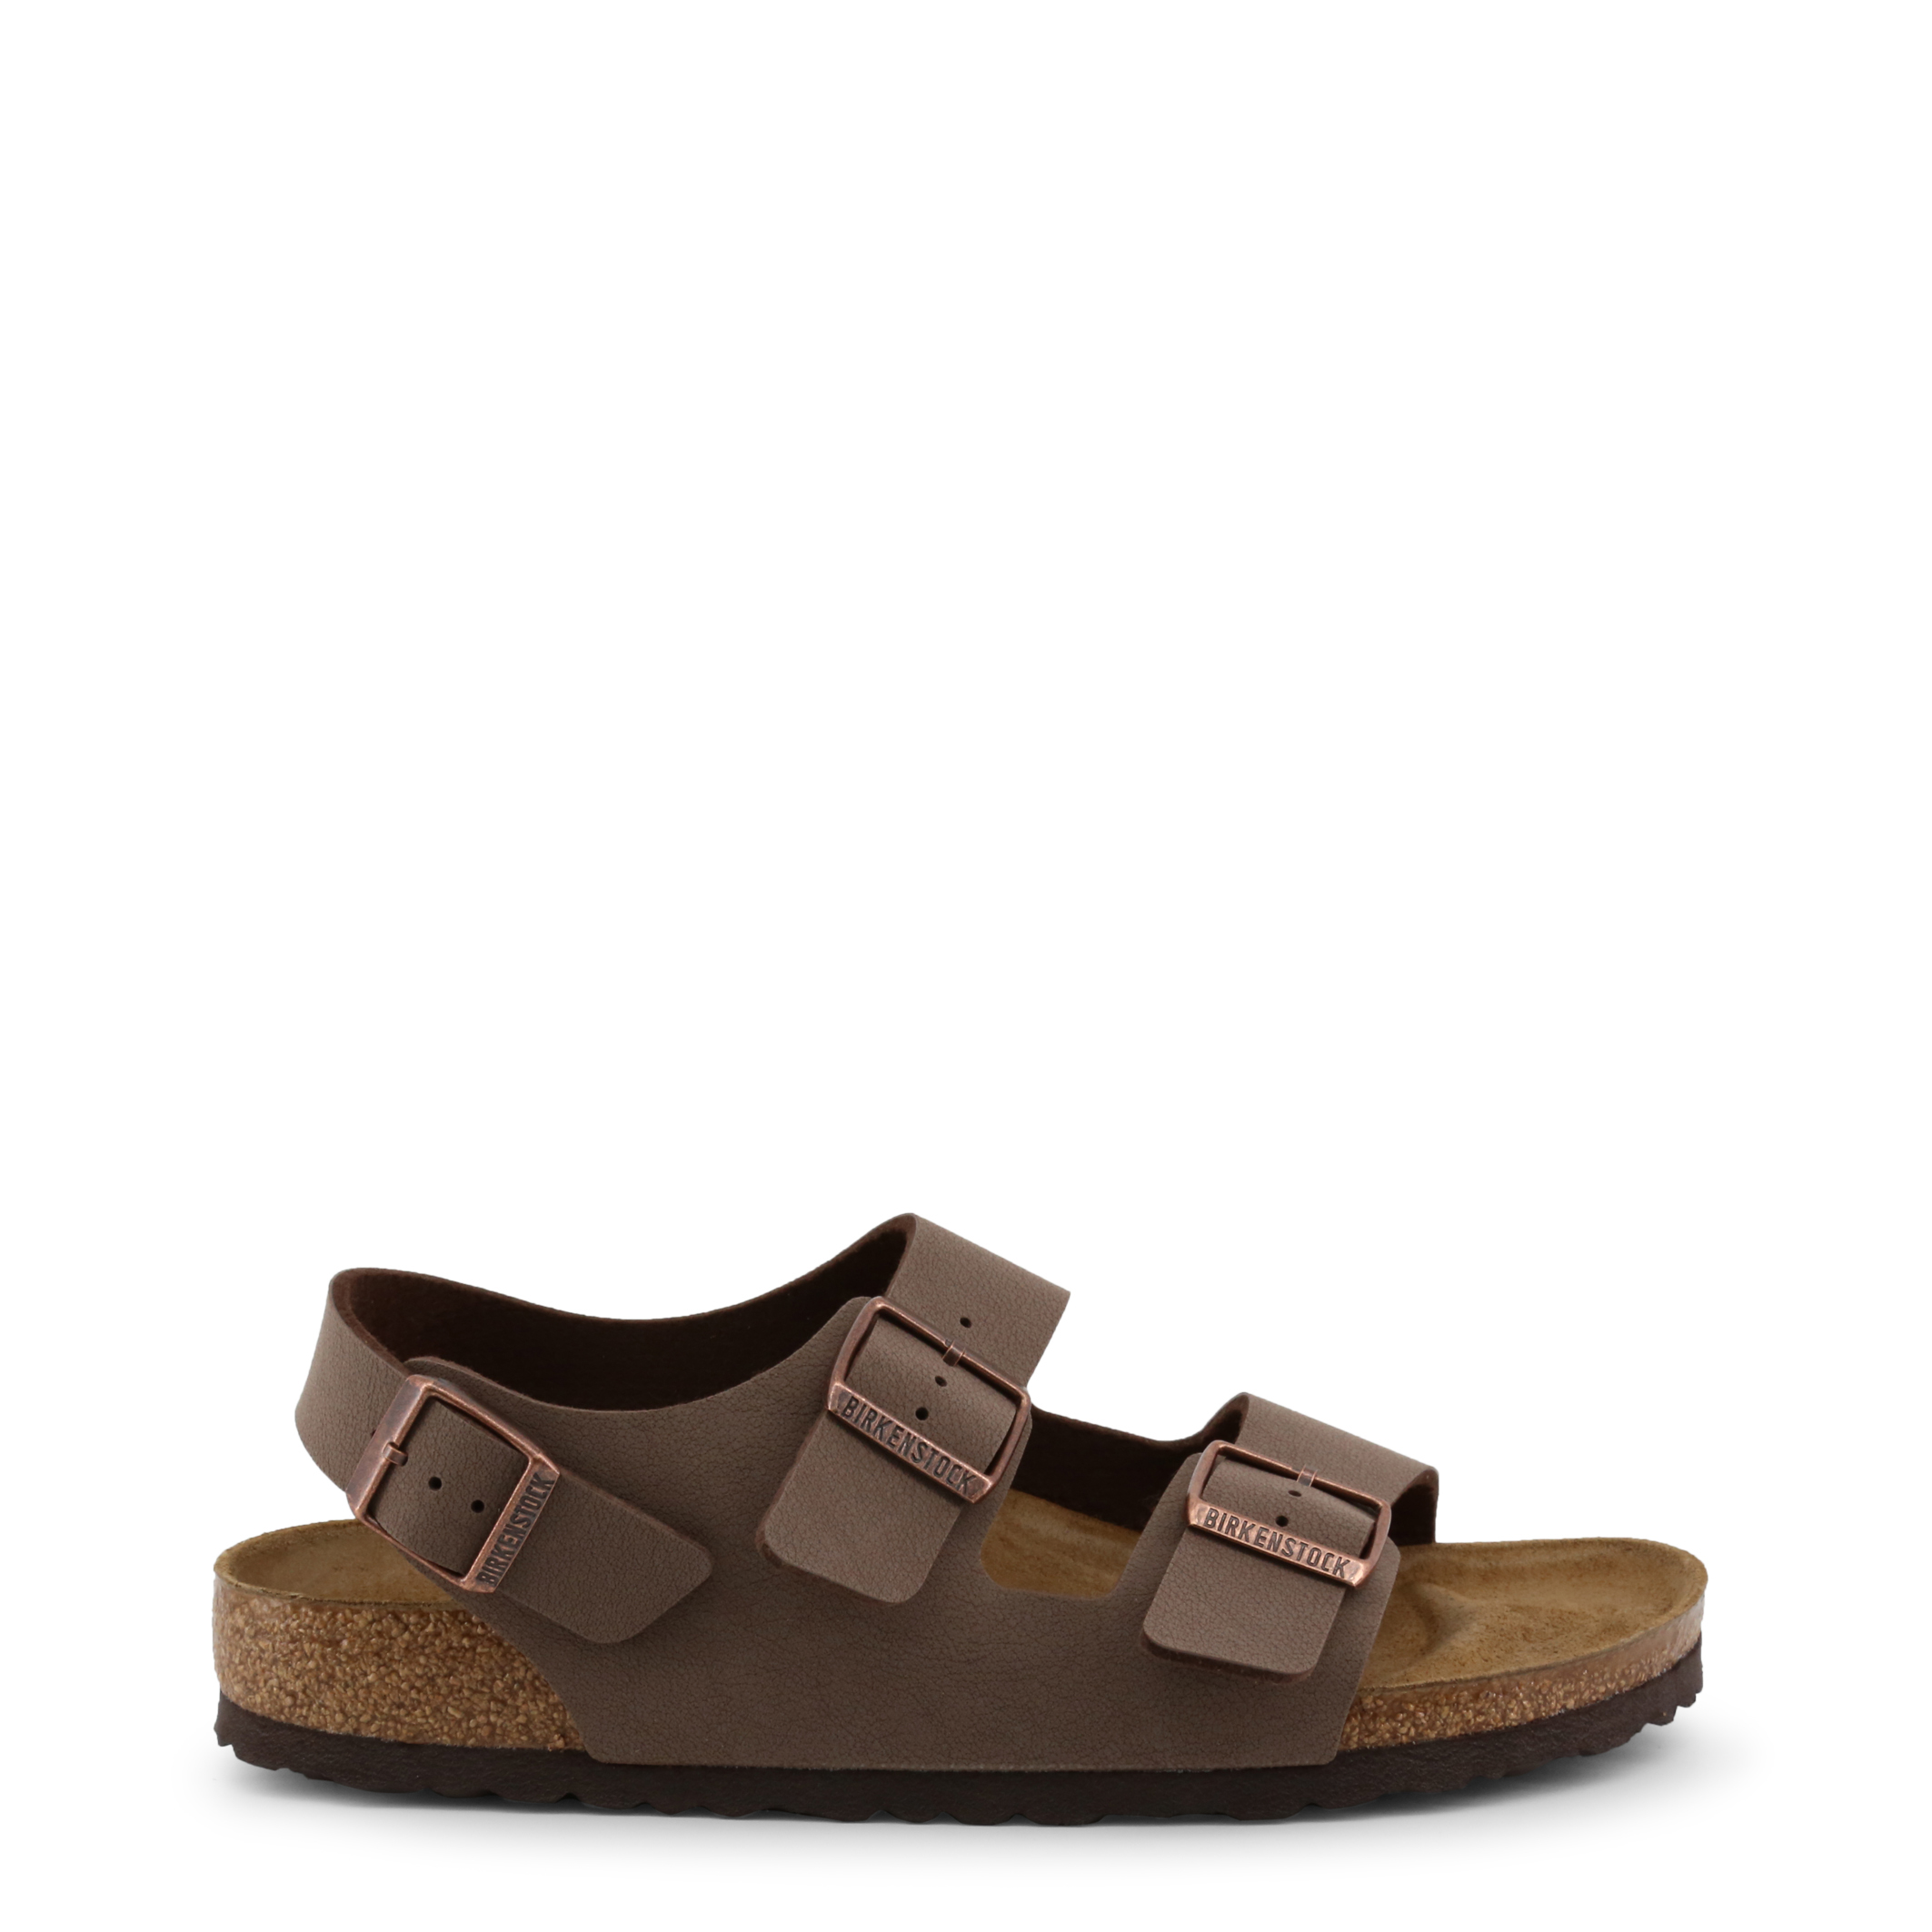 Tongs / Mules  Birkenstock MILANO brown